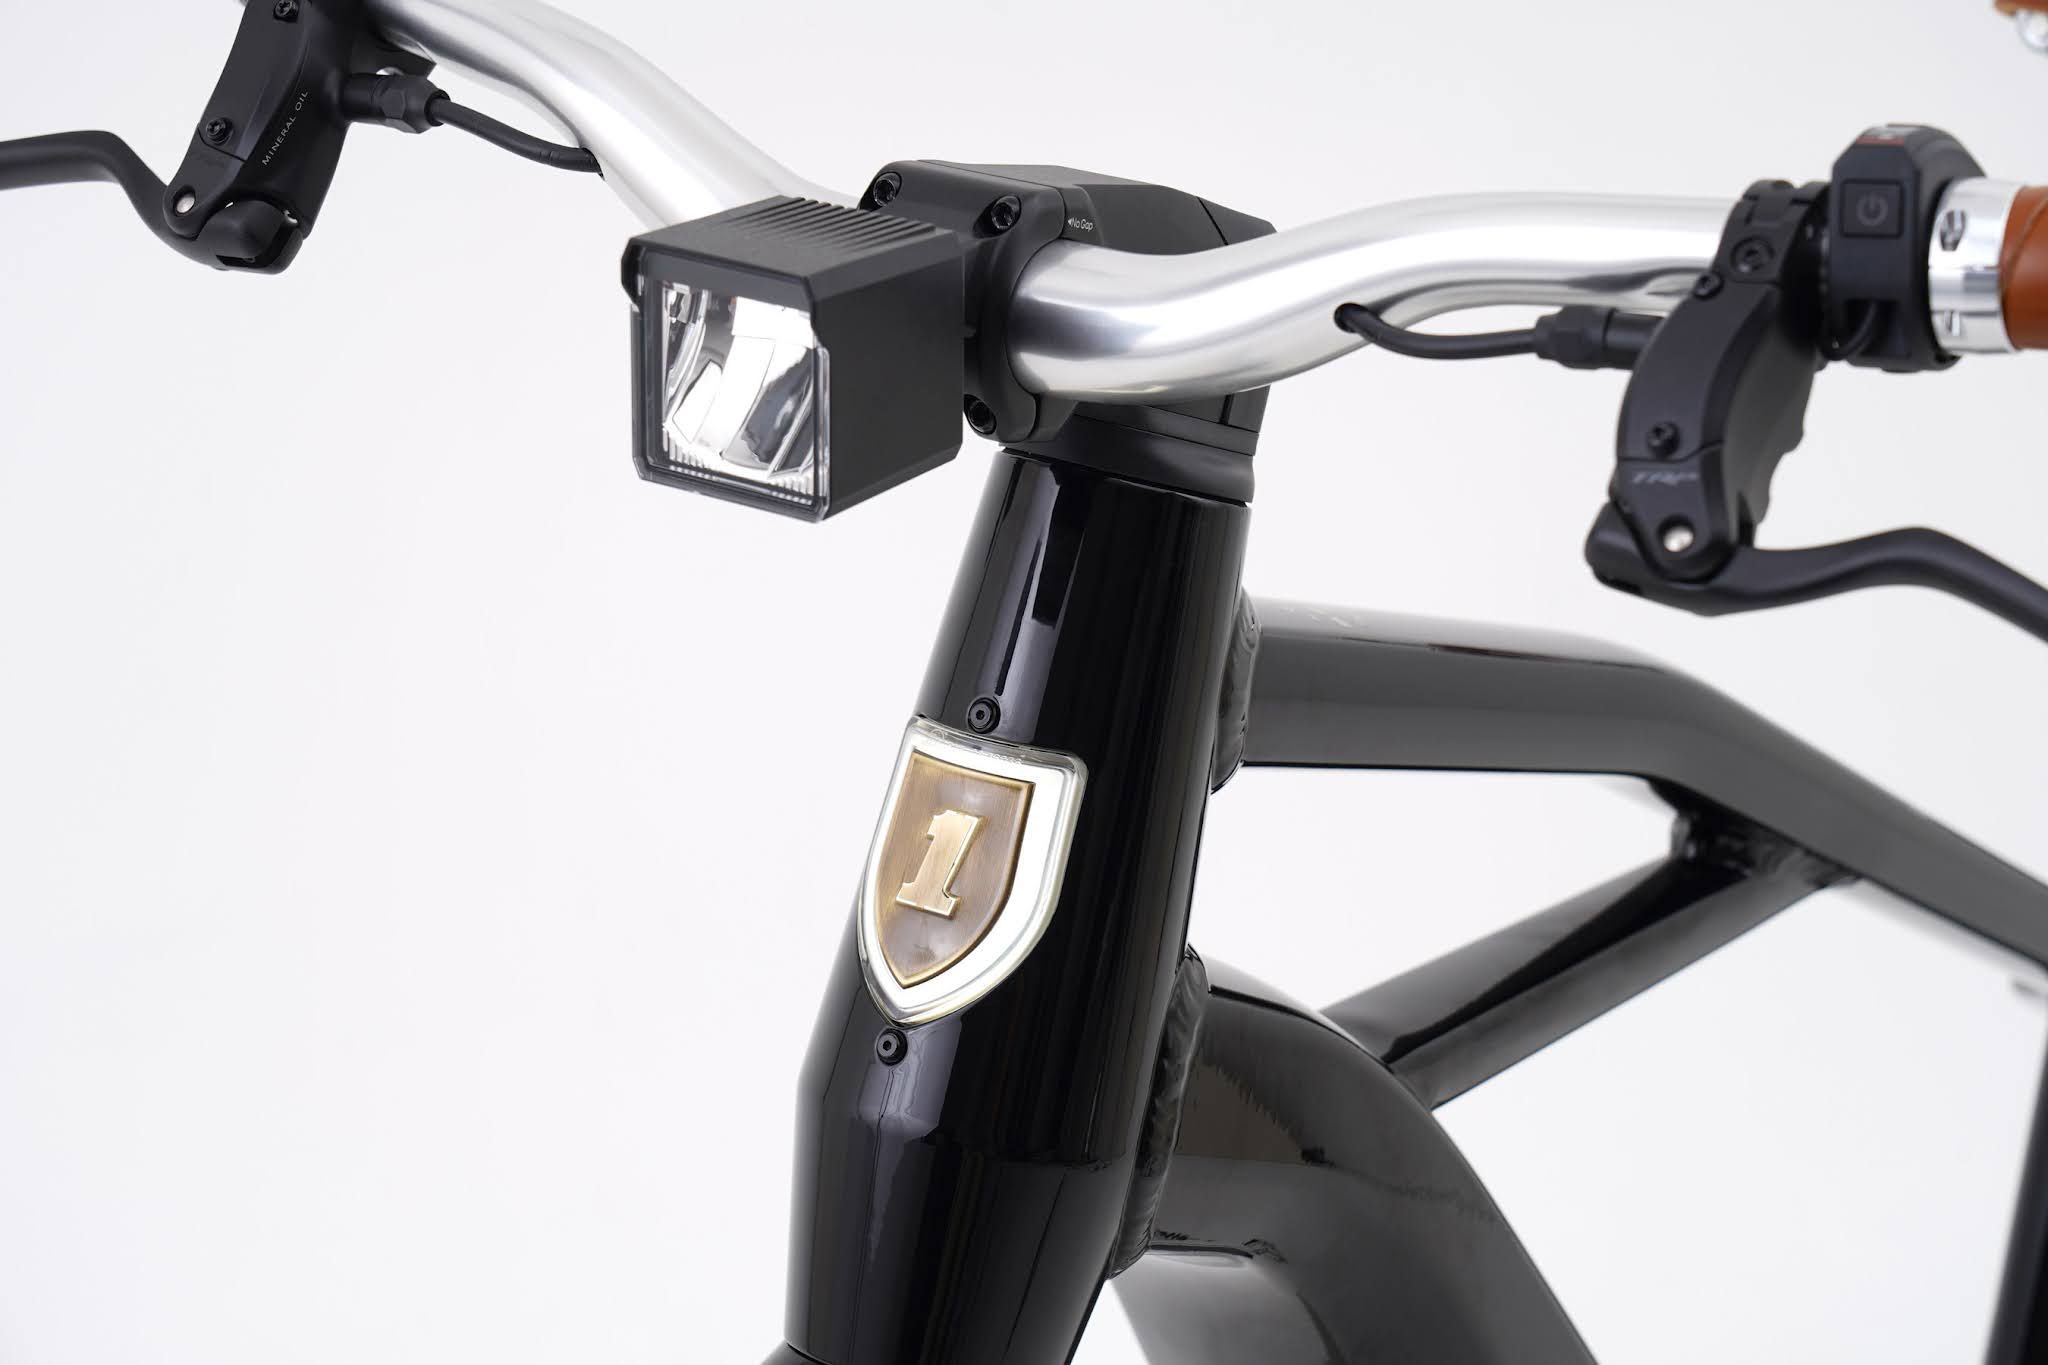 Serial 1 Debuts Limited-edition MOSH/TRIBUTE eBike, First in S1 series